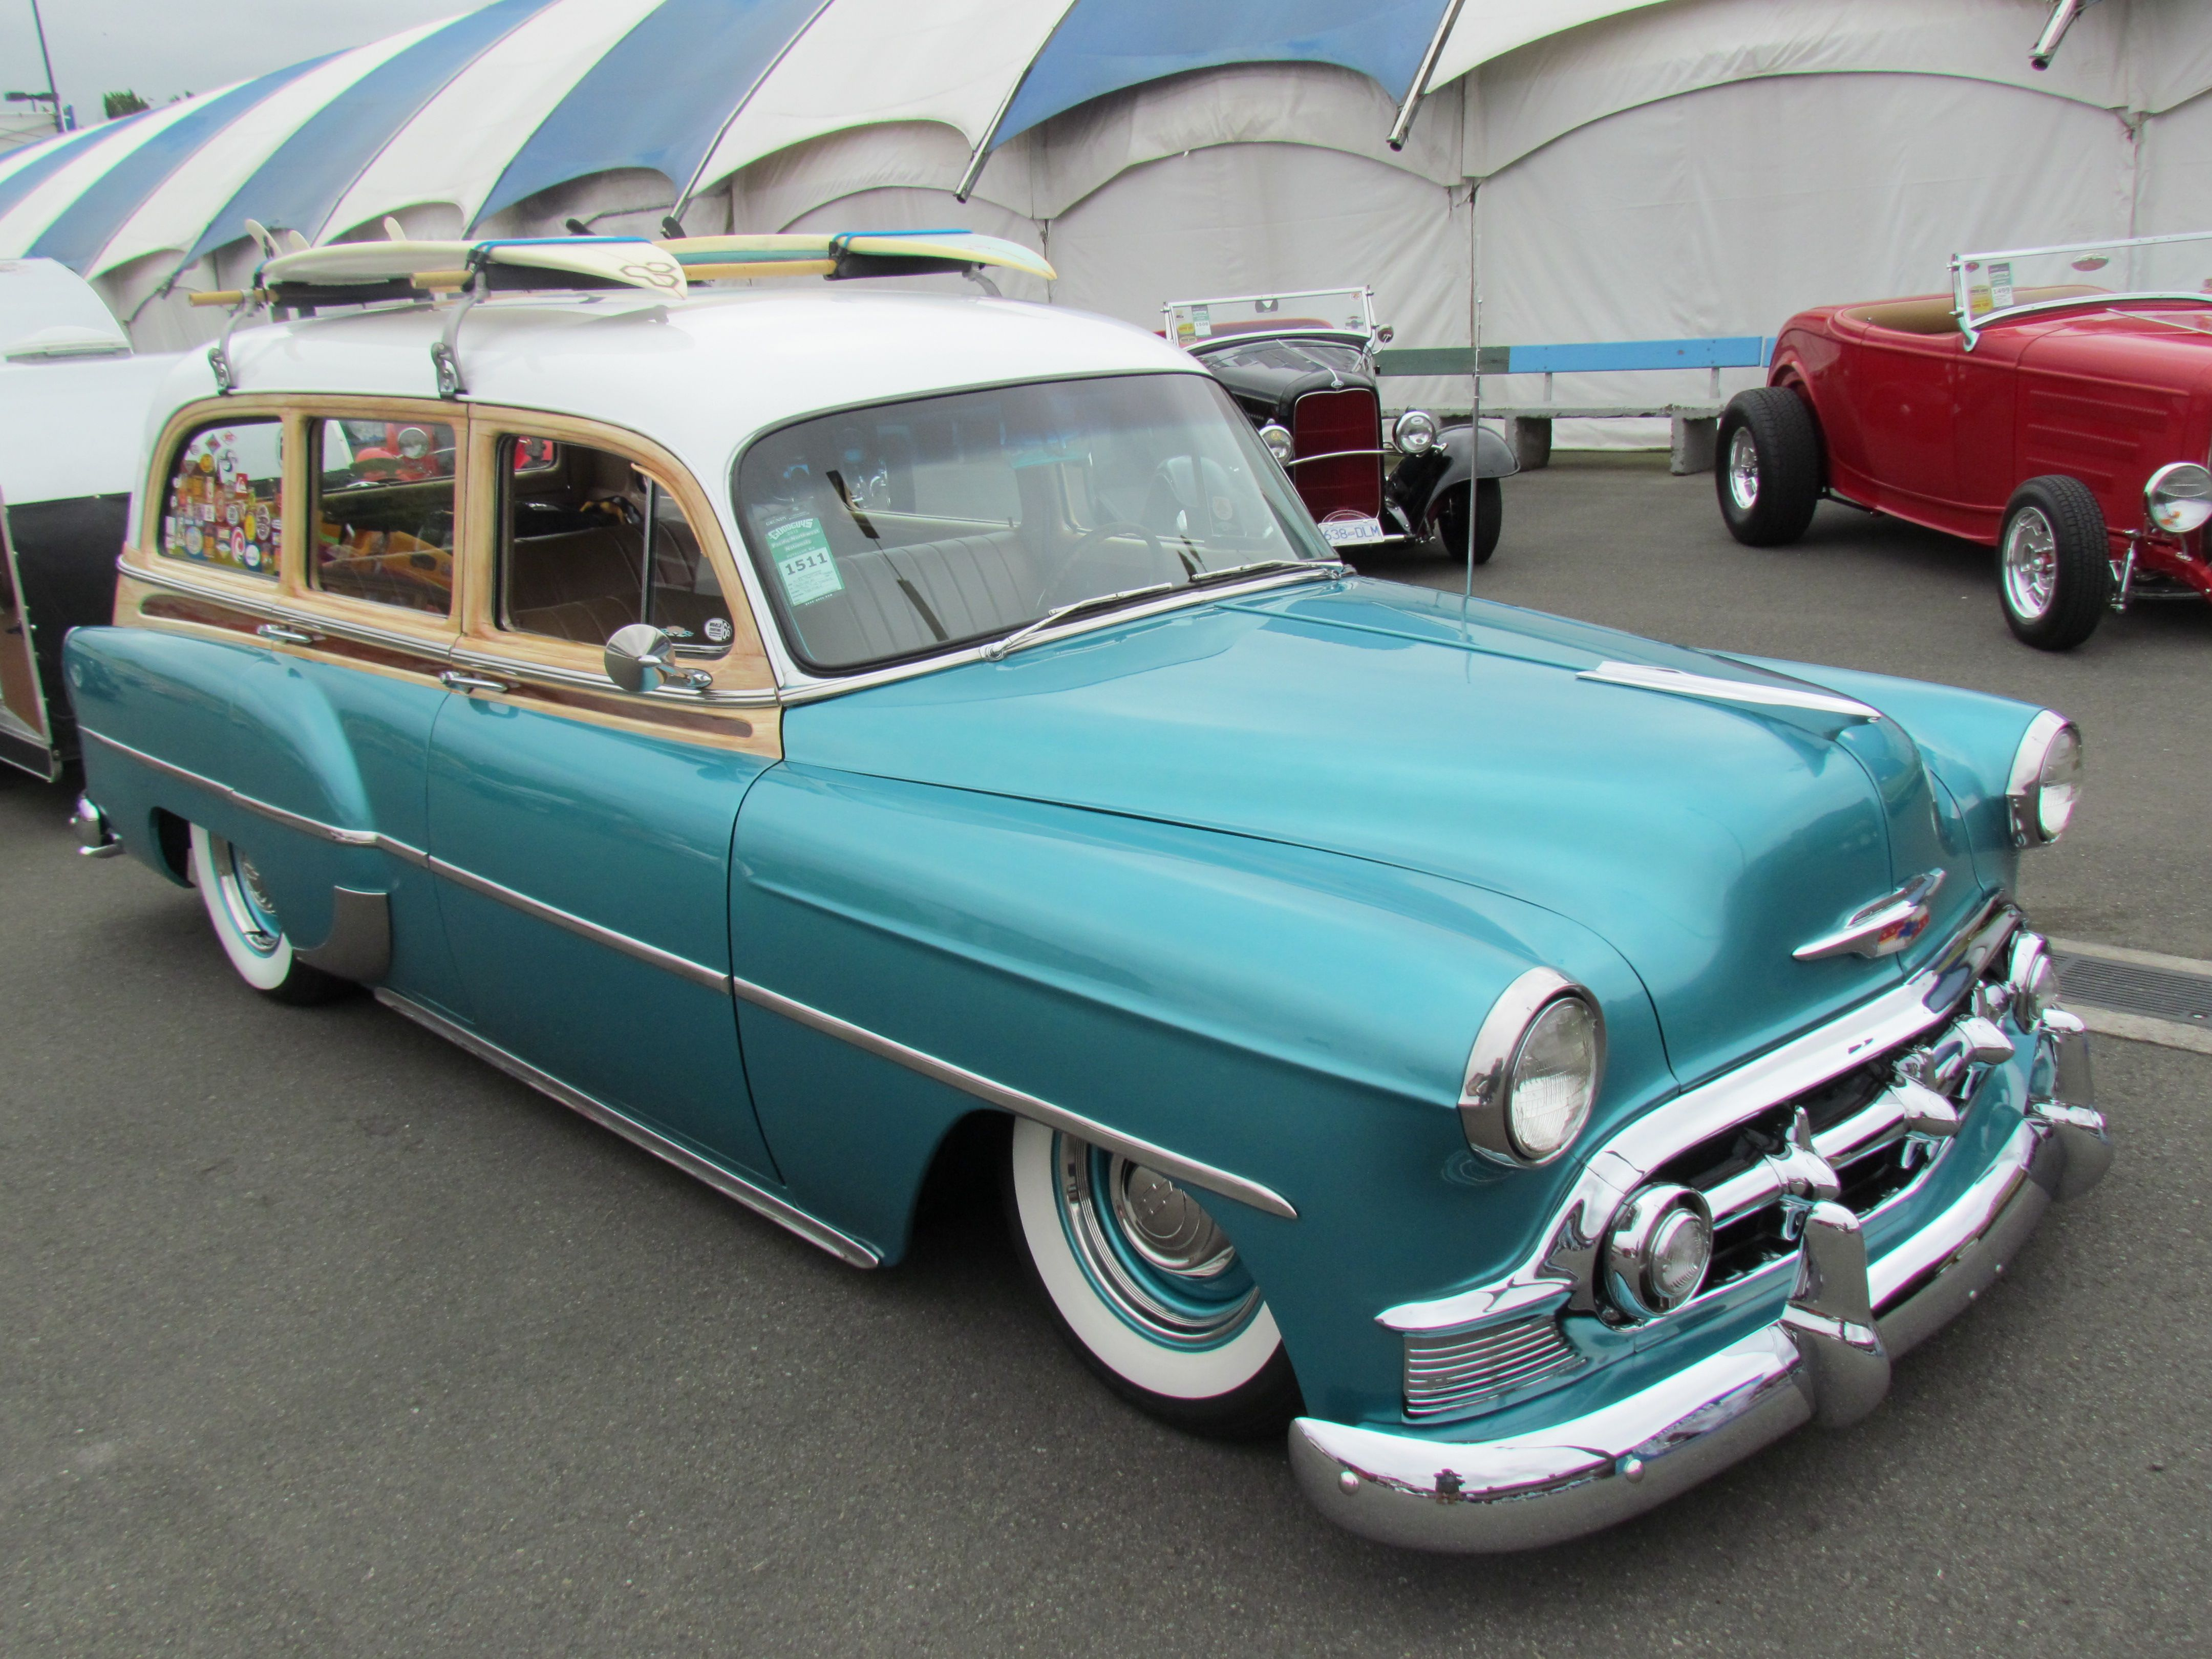 1953 Chevrolet Wagon Car Chevrolet Chevrolet Cool Pictures